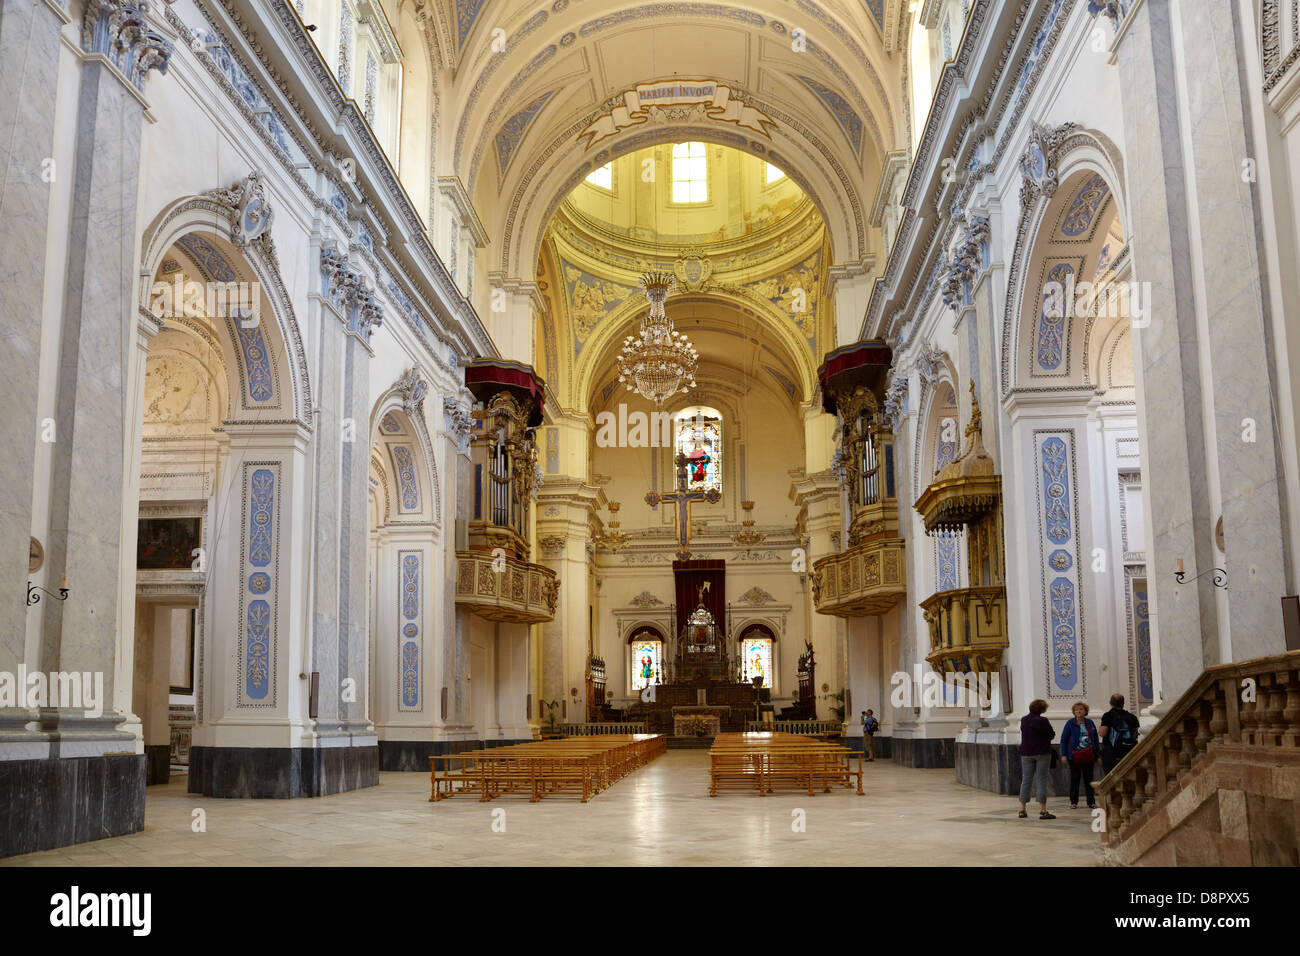 Piaza Armerina, interior view of Baroque Cathedral from 1768, Sicily, Italy - Stock Image